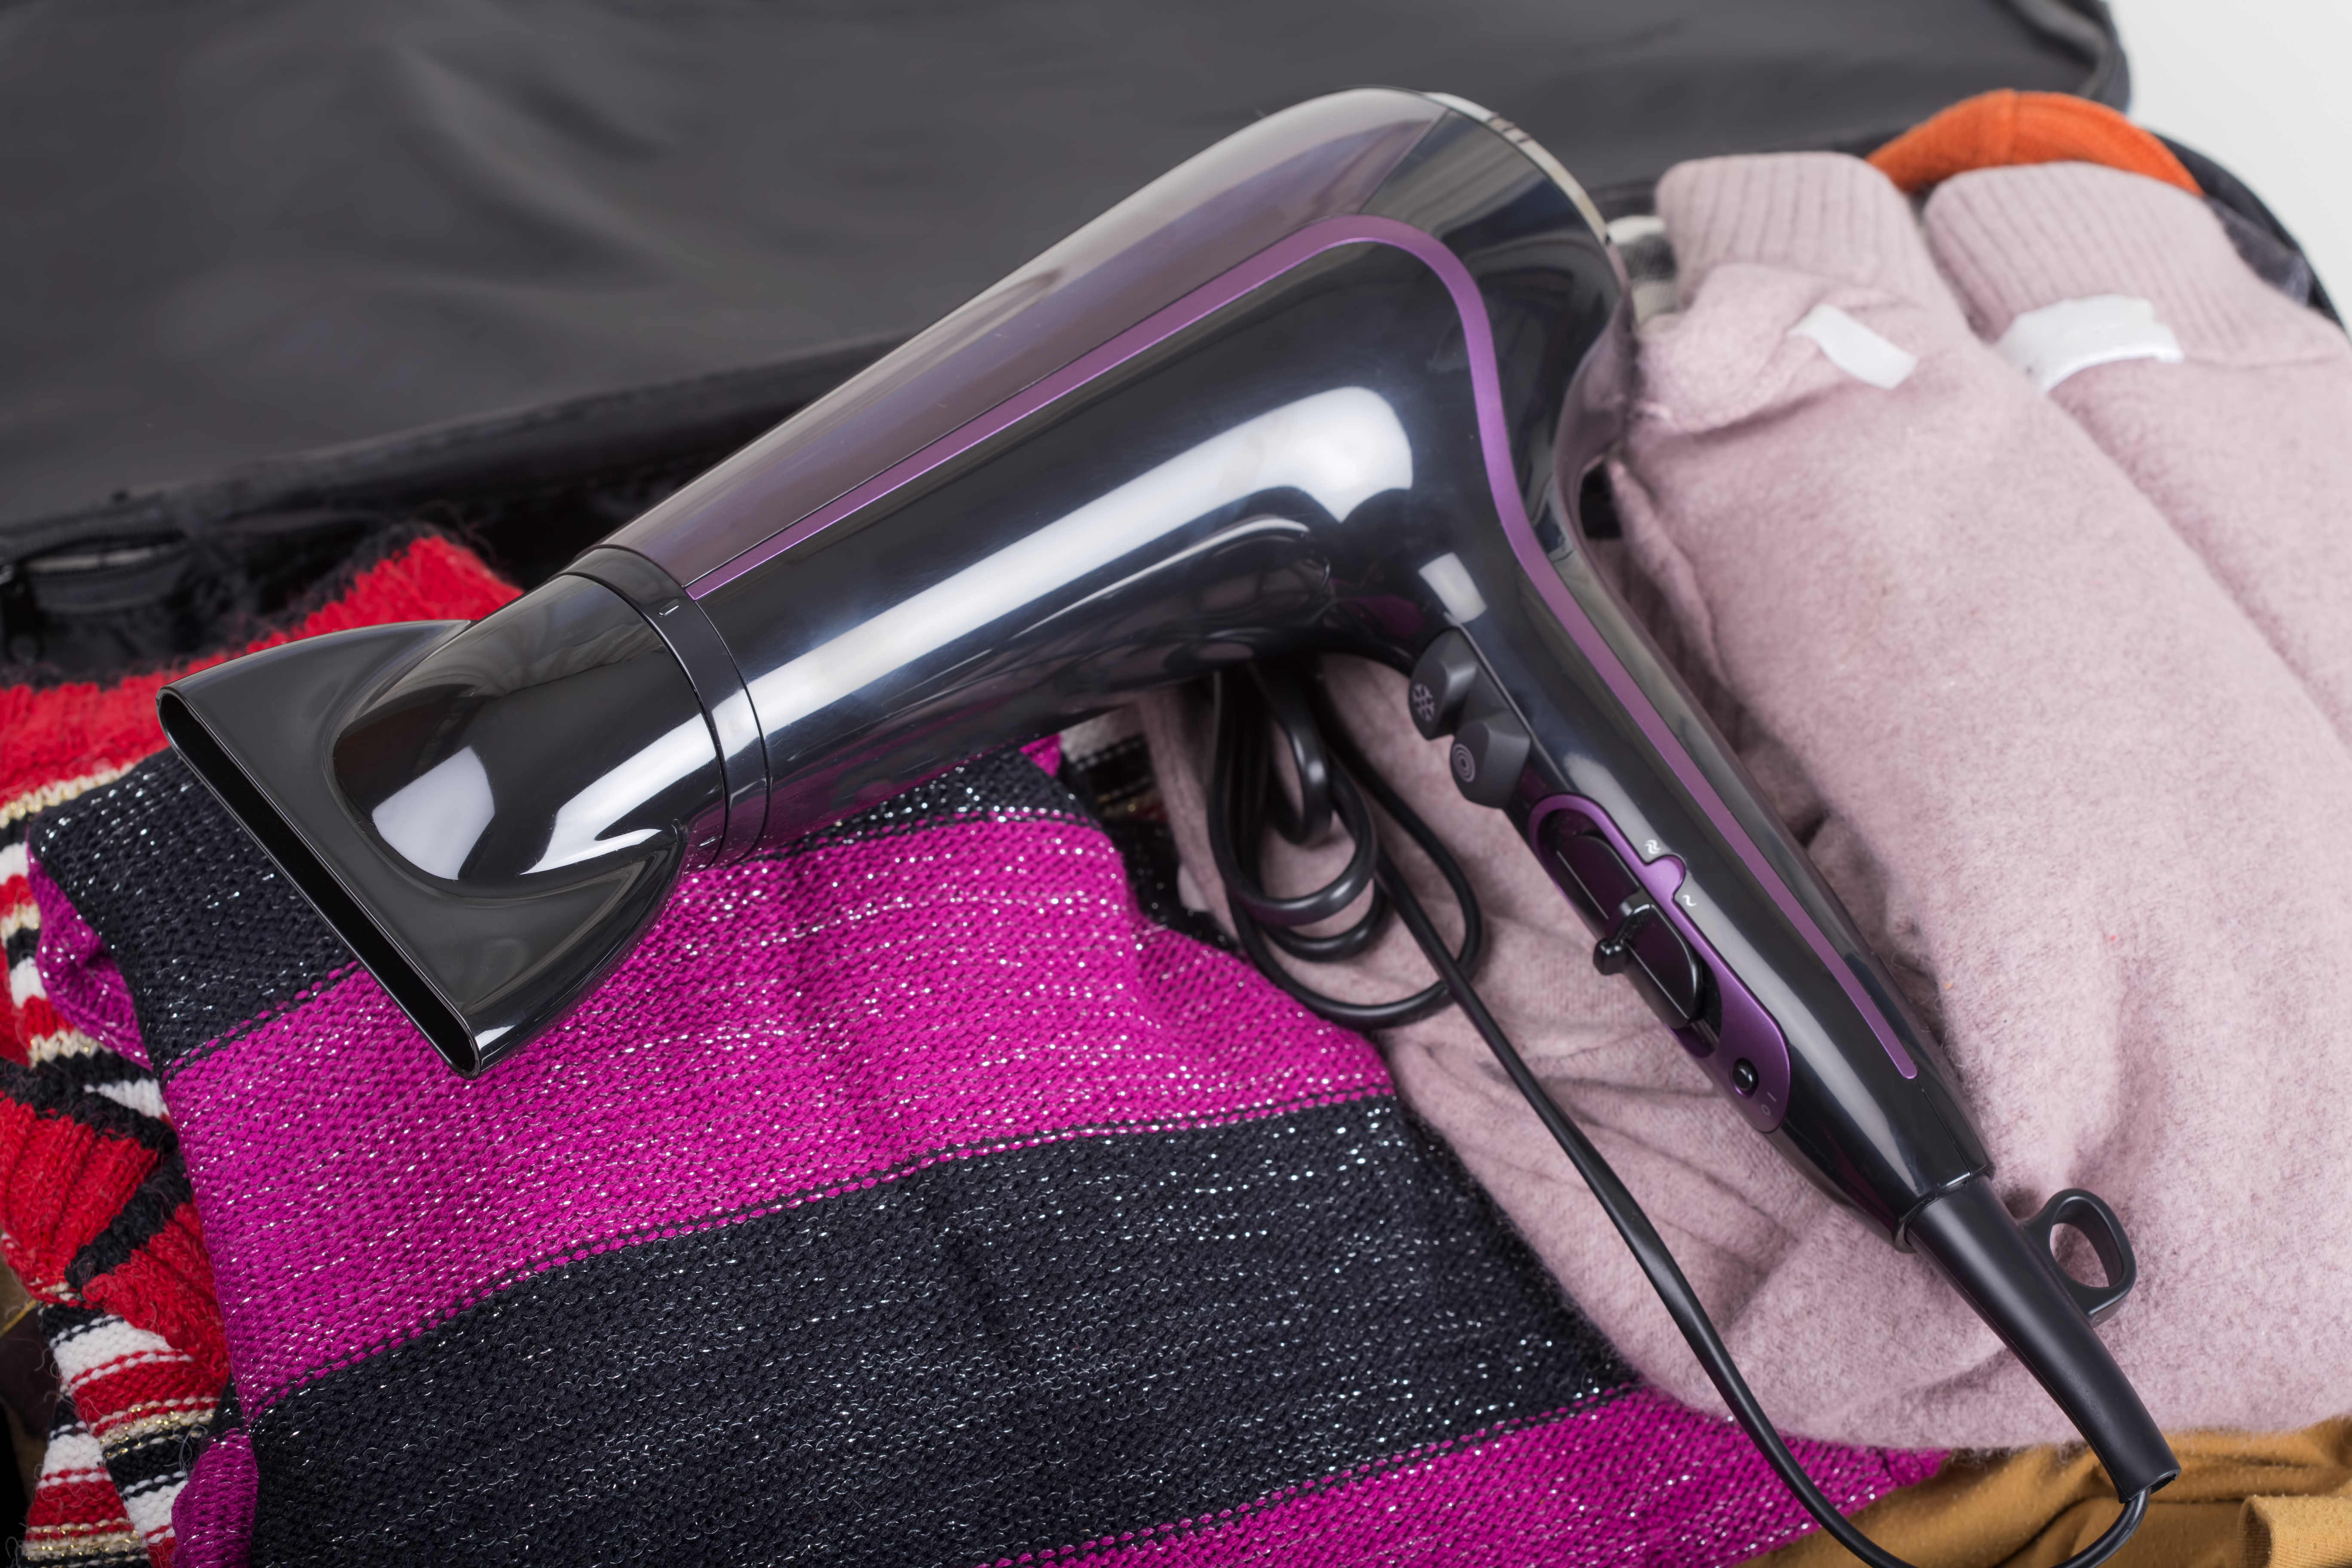 travel hair dryer in suitcase